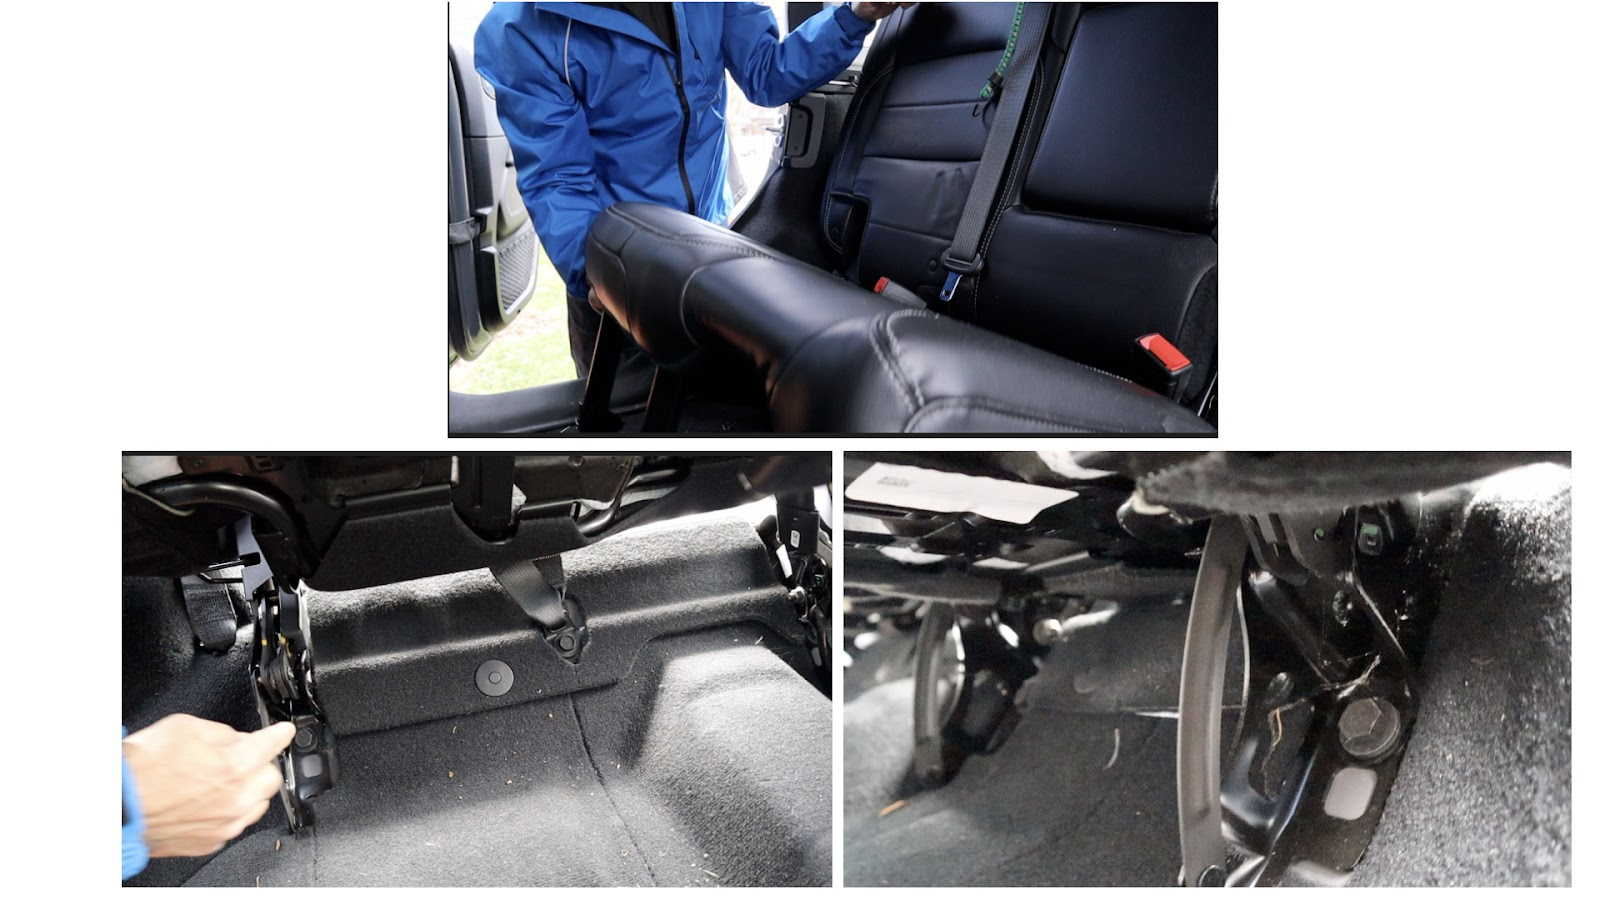 Removal of Under seat bolts at the Back